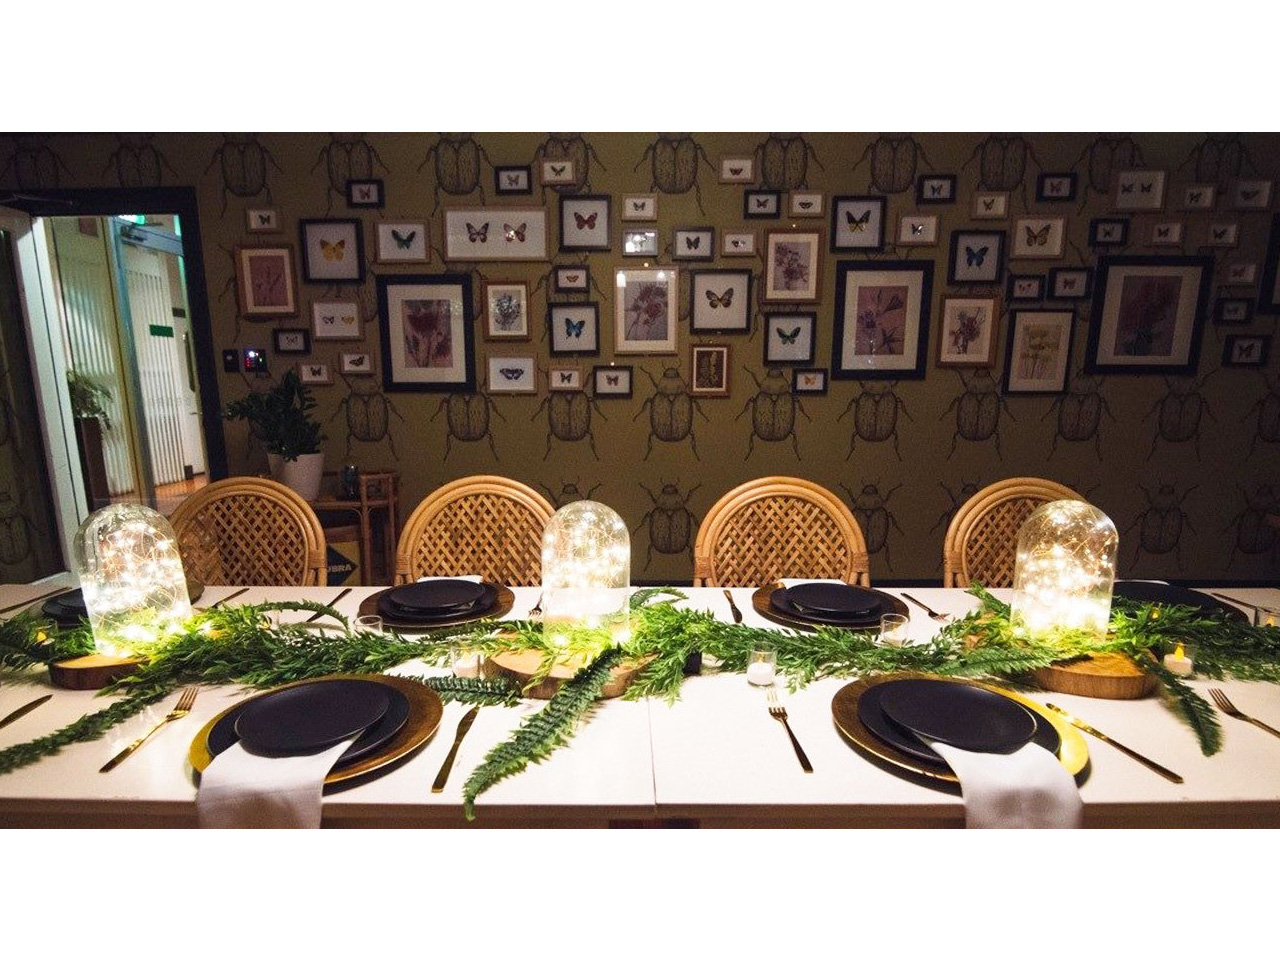 Long table set for a dining experience with framed butterfly pictures on wall